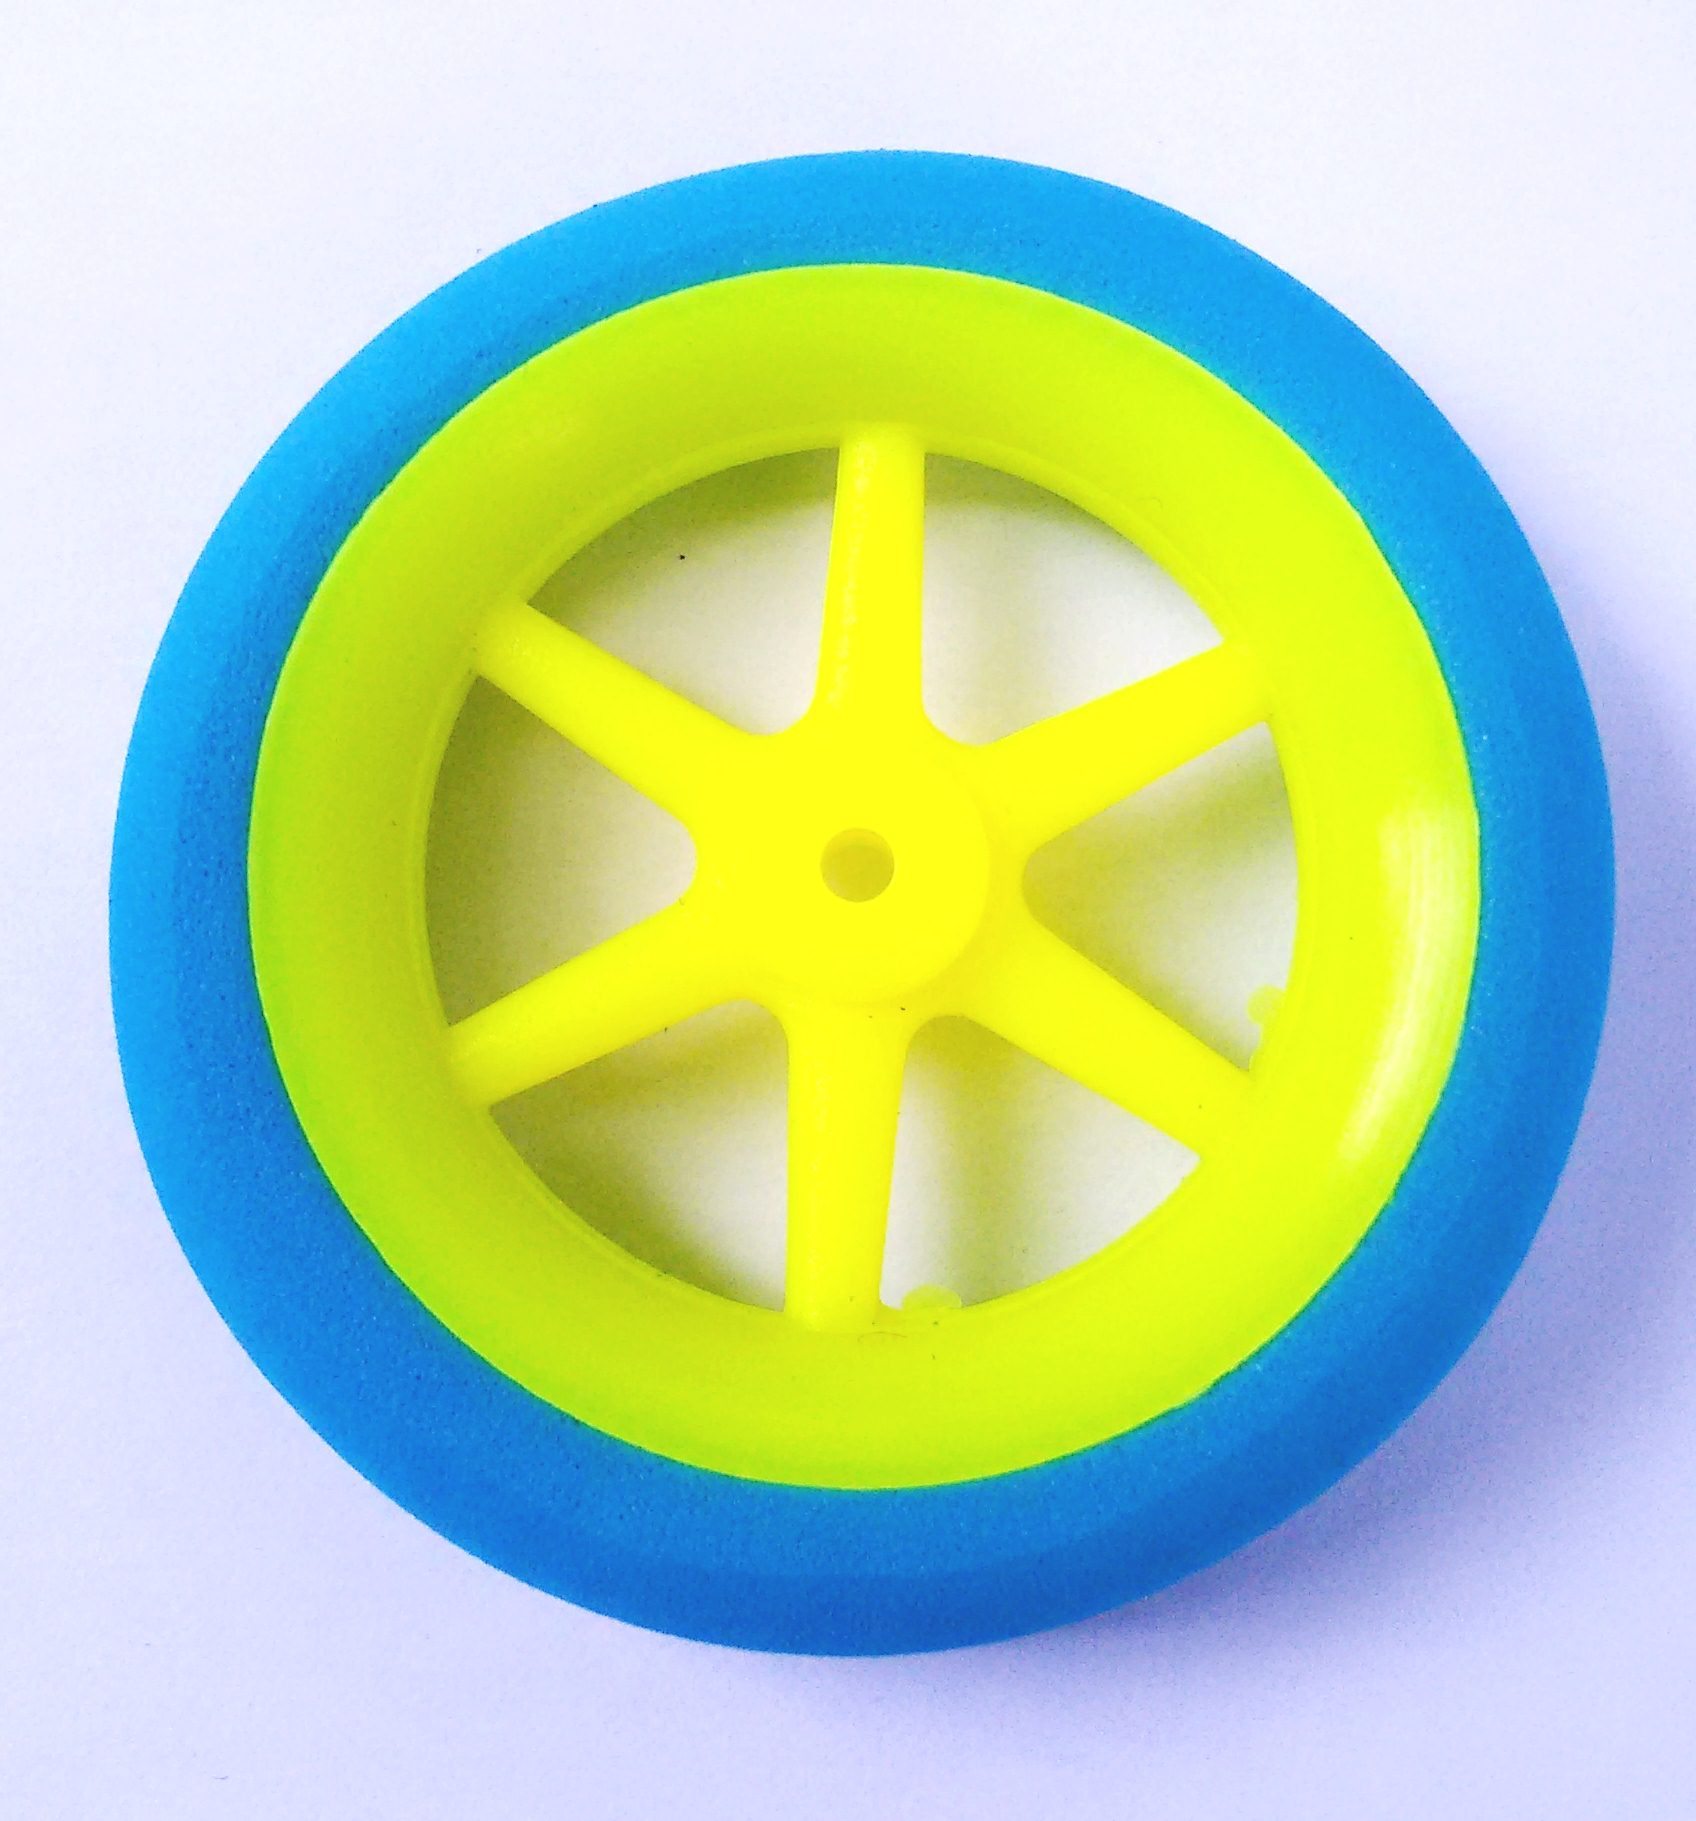 10404 - Roda Super Light Multi Spoke (Diâmetro: 50mm, Largura: 13mm)